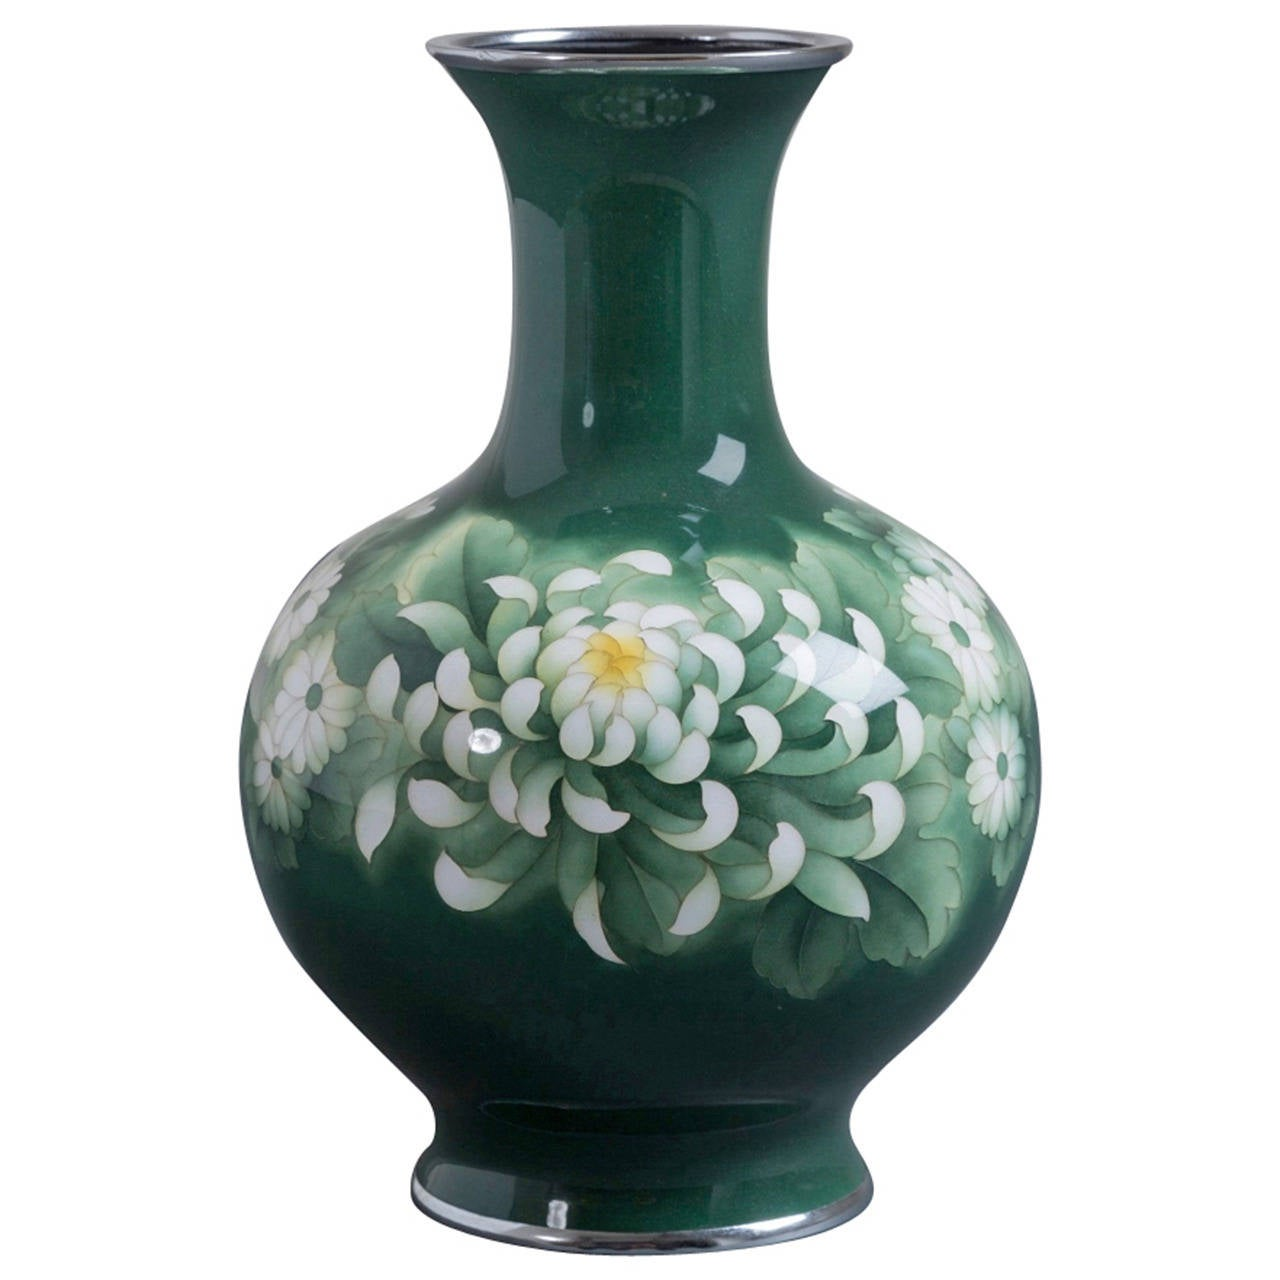 Japanese Cloisonné Enamel Vase Attributed to Inarba For Sale